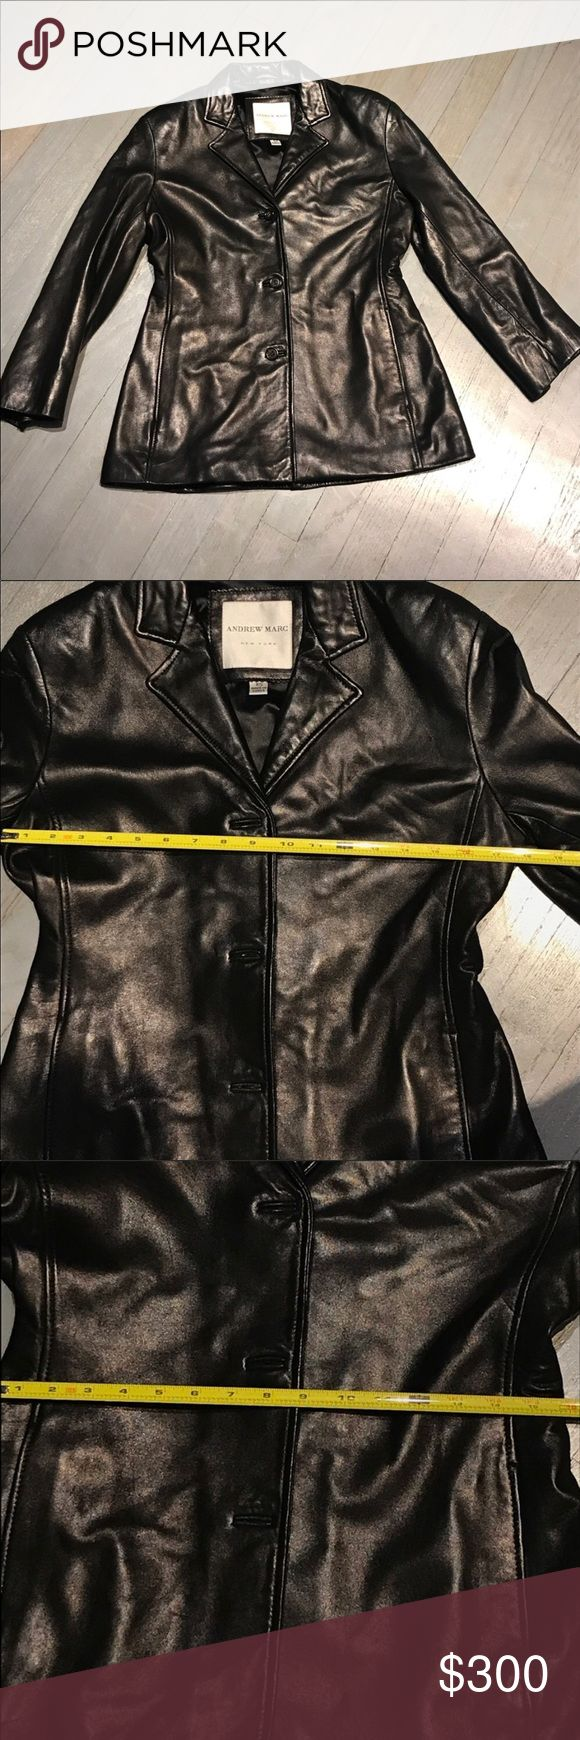 Andrew Marc Notch Collar Leather Blazer Jacket Andrew Marc NY black notch collar blazer style 3-button 2 pocket 100% genuine soft leather jacket. Excellent condition no issues stains rips holes tears. Measurements in pictures RN74847 Andrew Marc Jackets & Coats